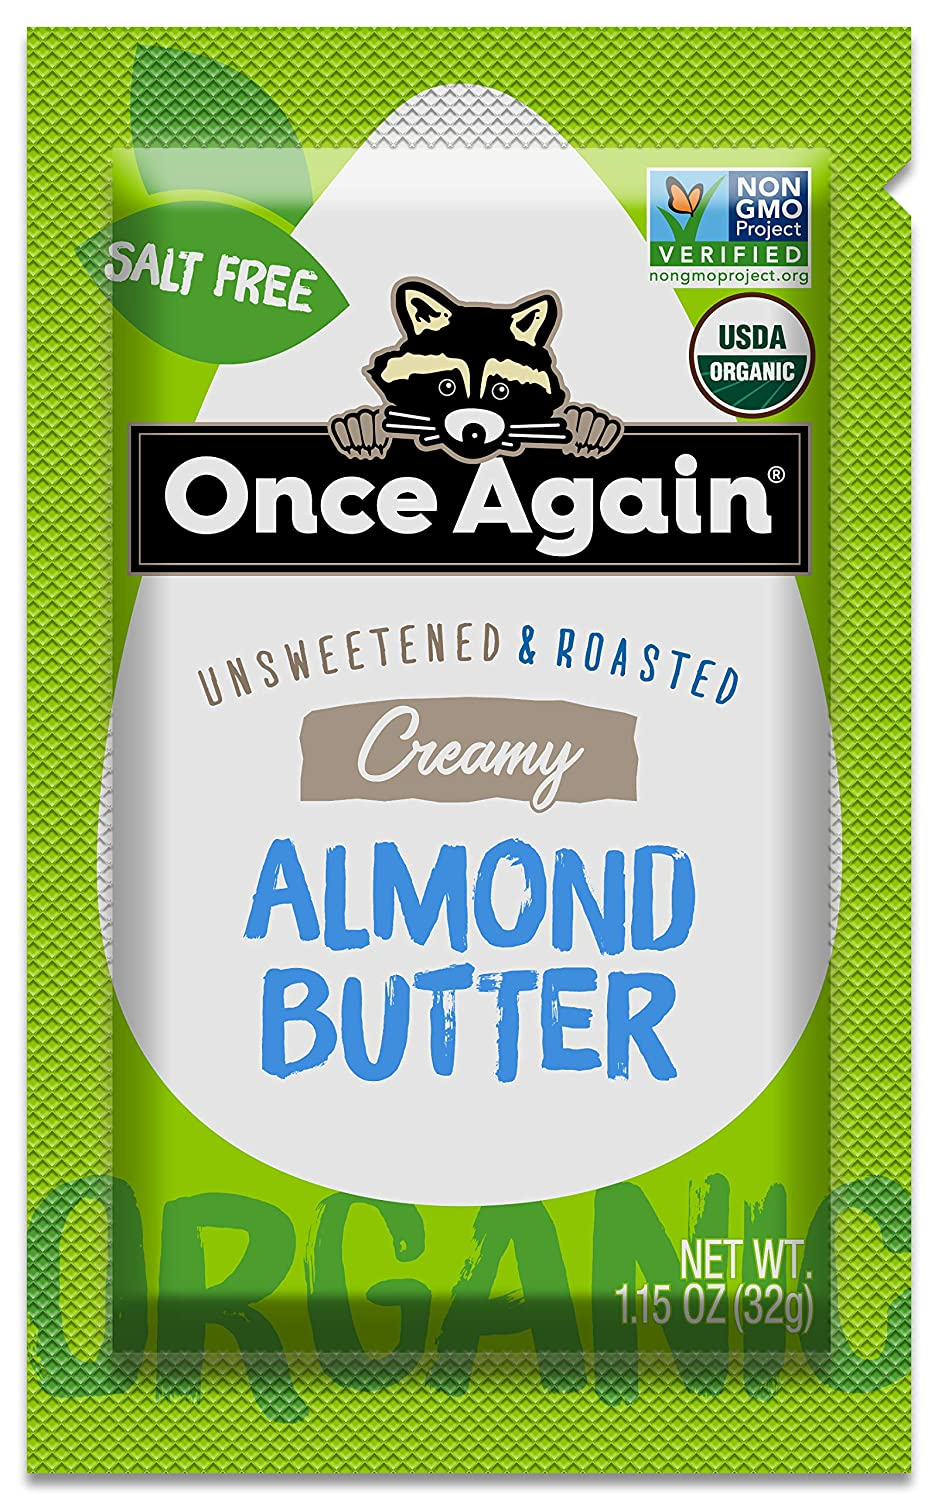 Once Again Organic Almond 10 Butter Very popular Classic Original Count